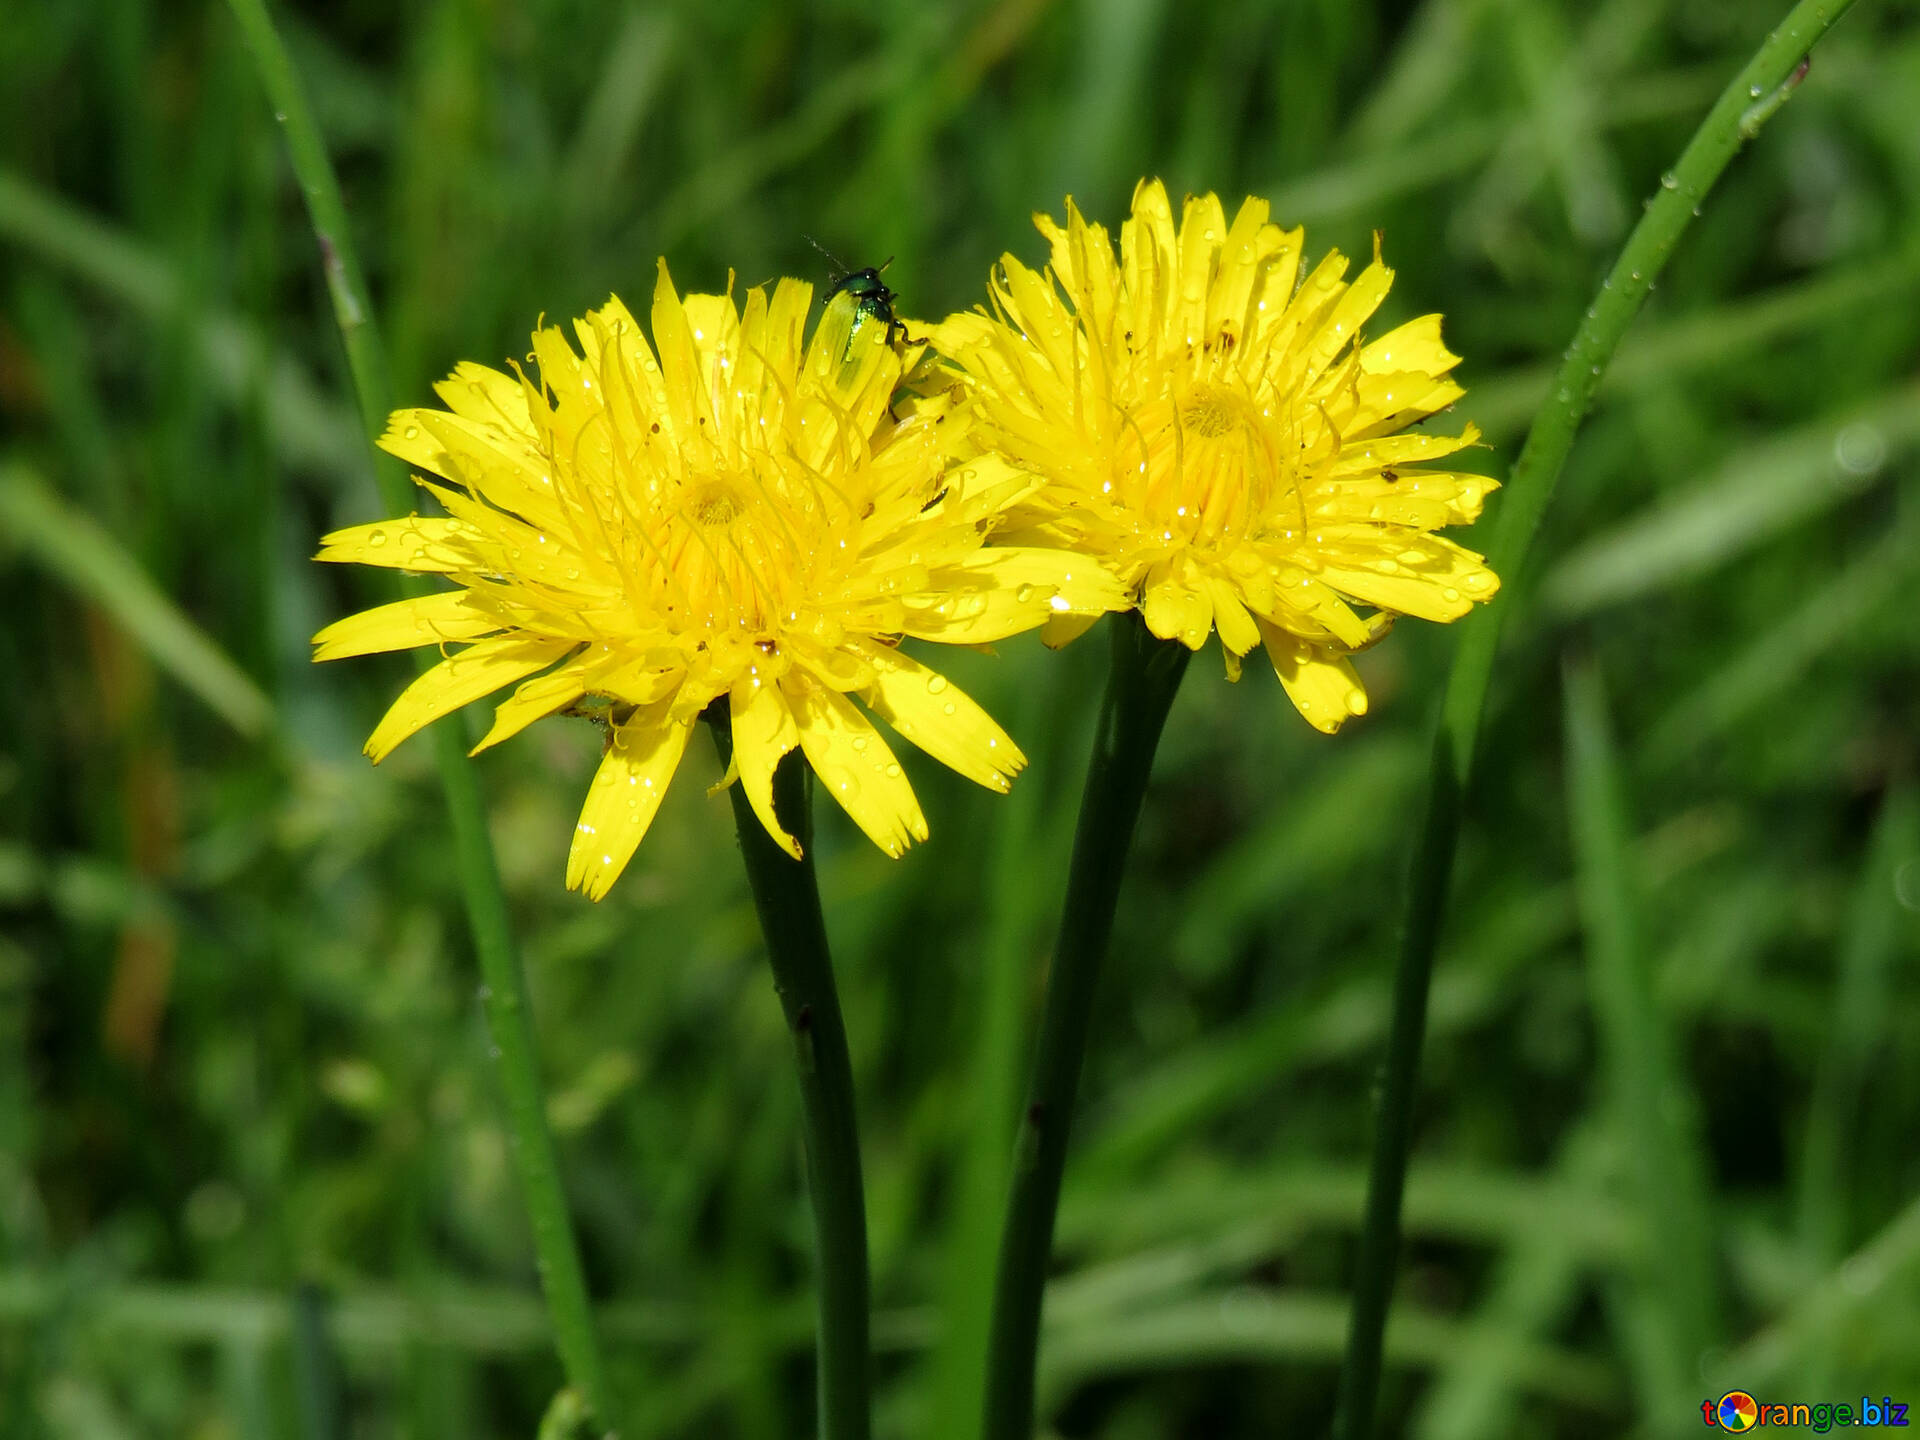 Yellow Dandelion Flowers Yellow Flowers In The Grass Summer 24920